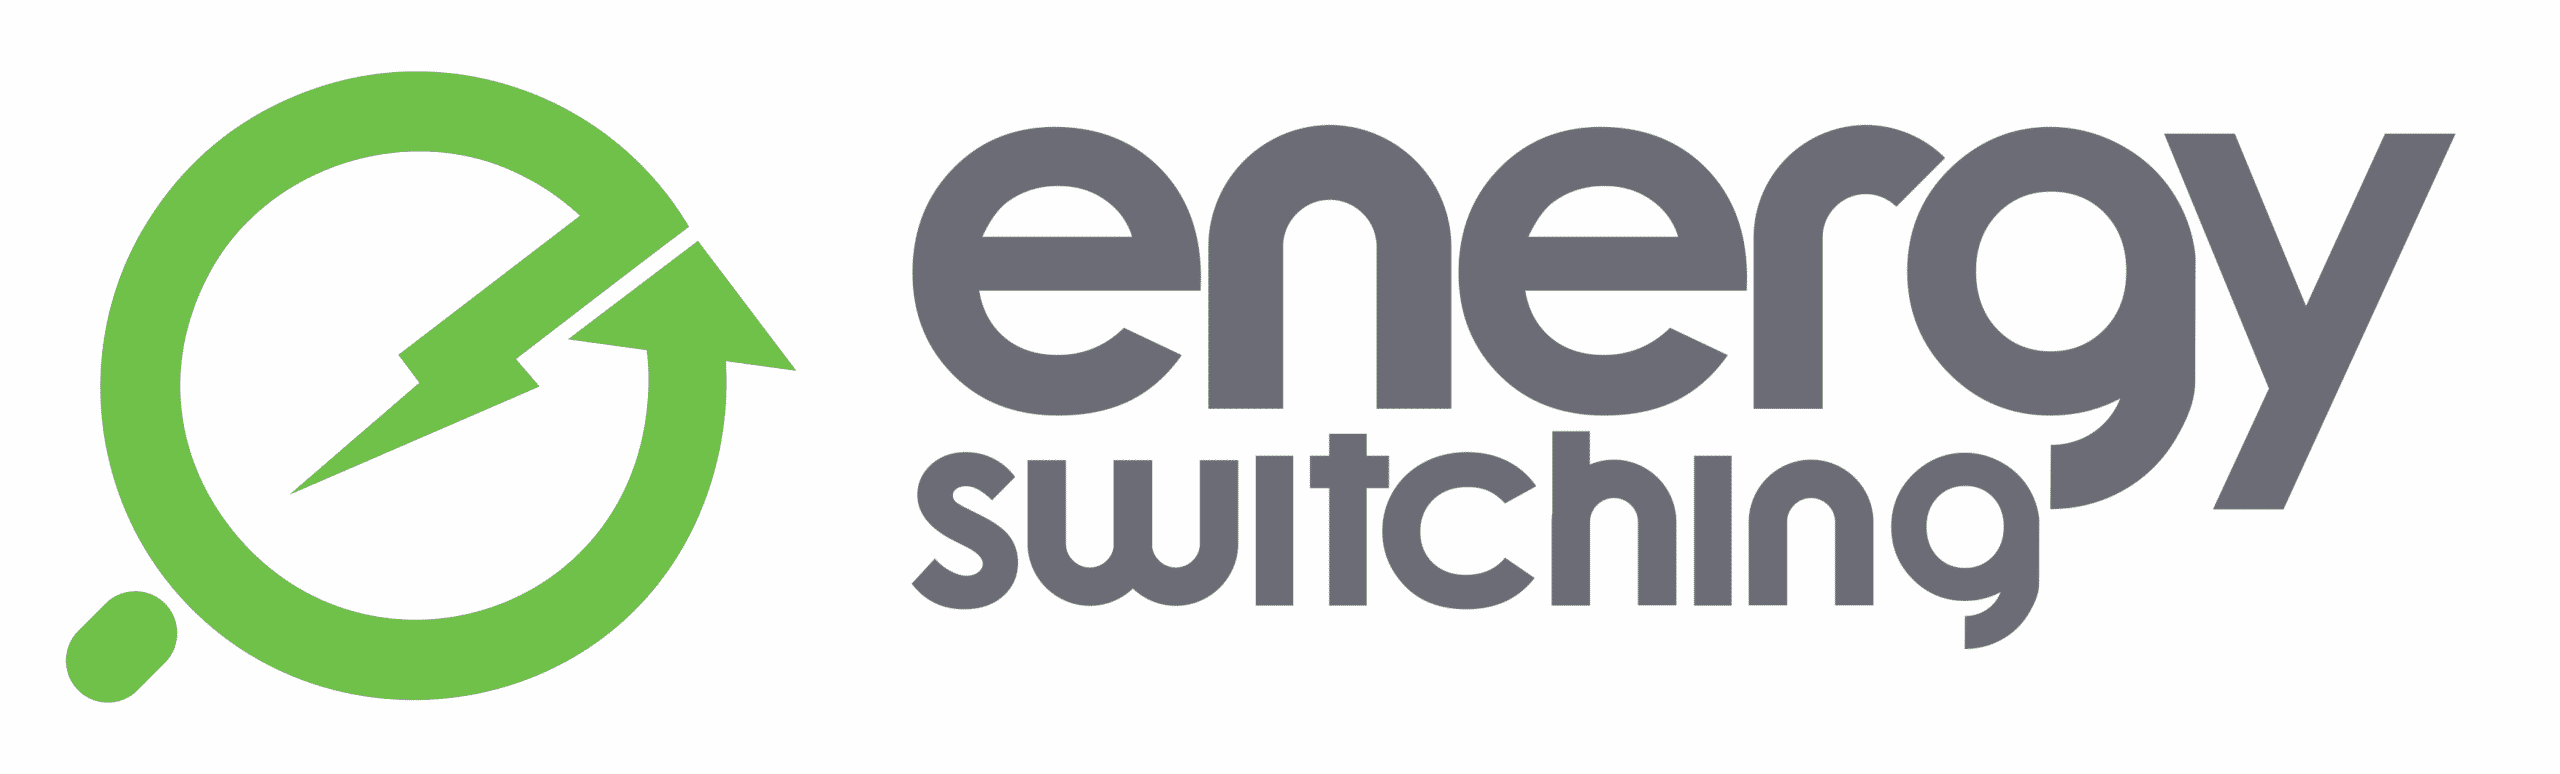 Energy Switching UK